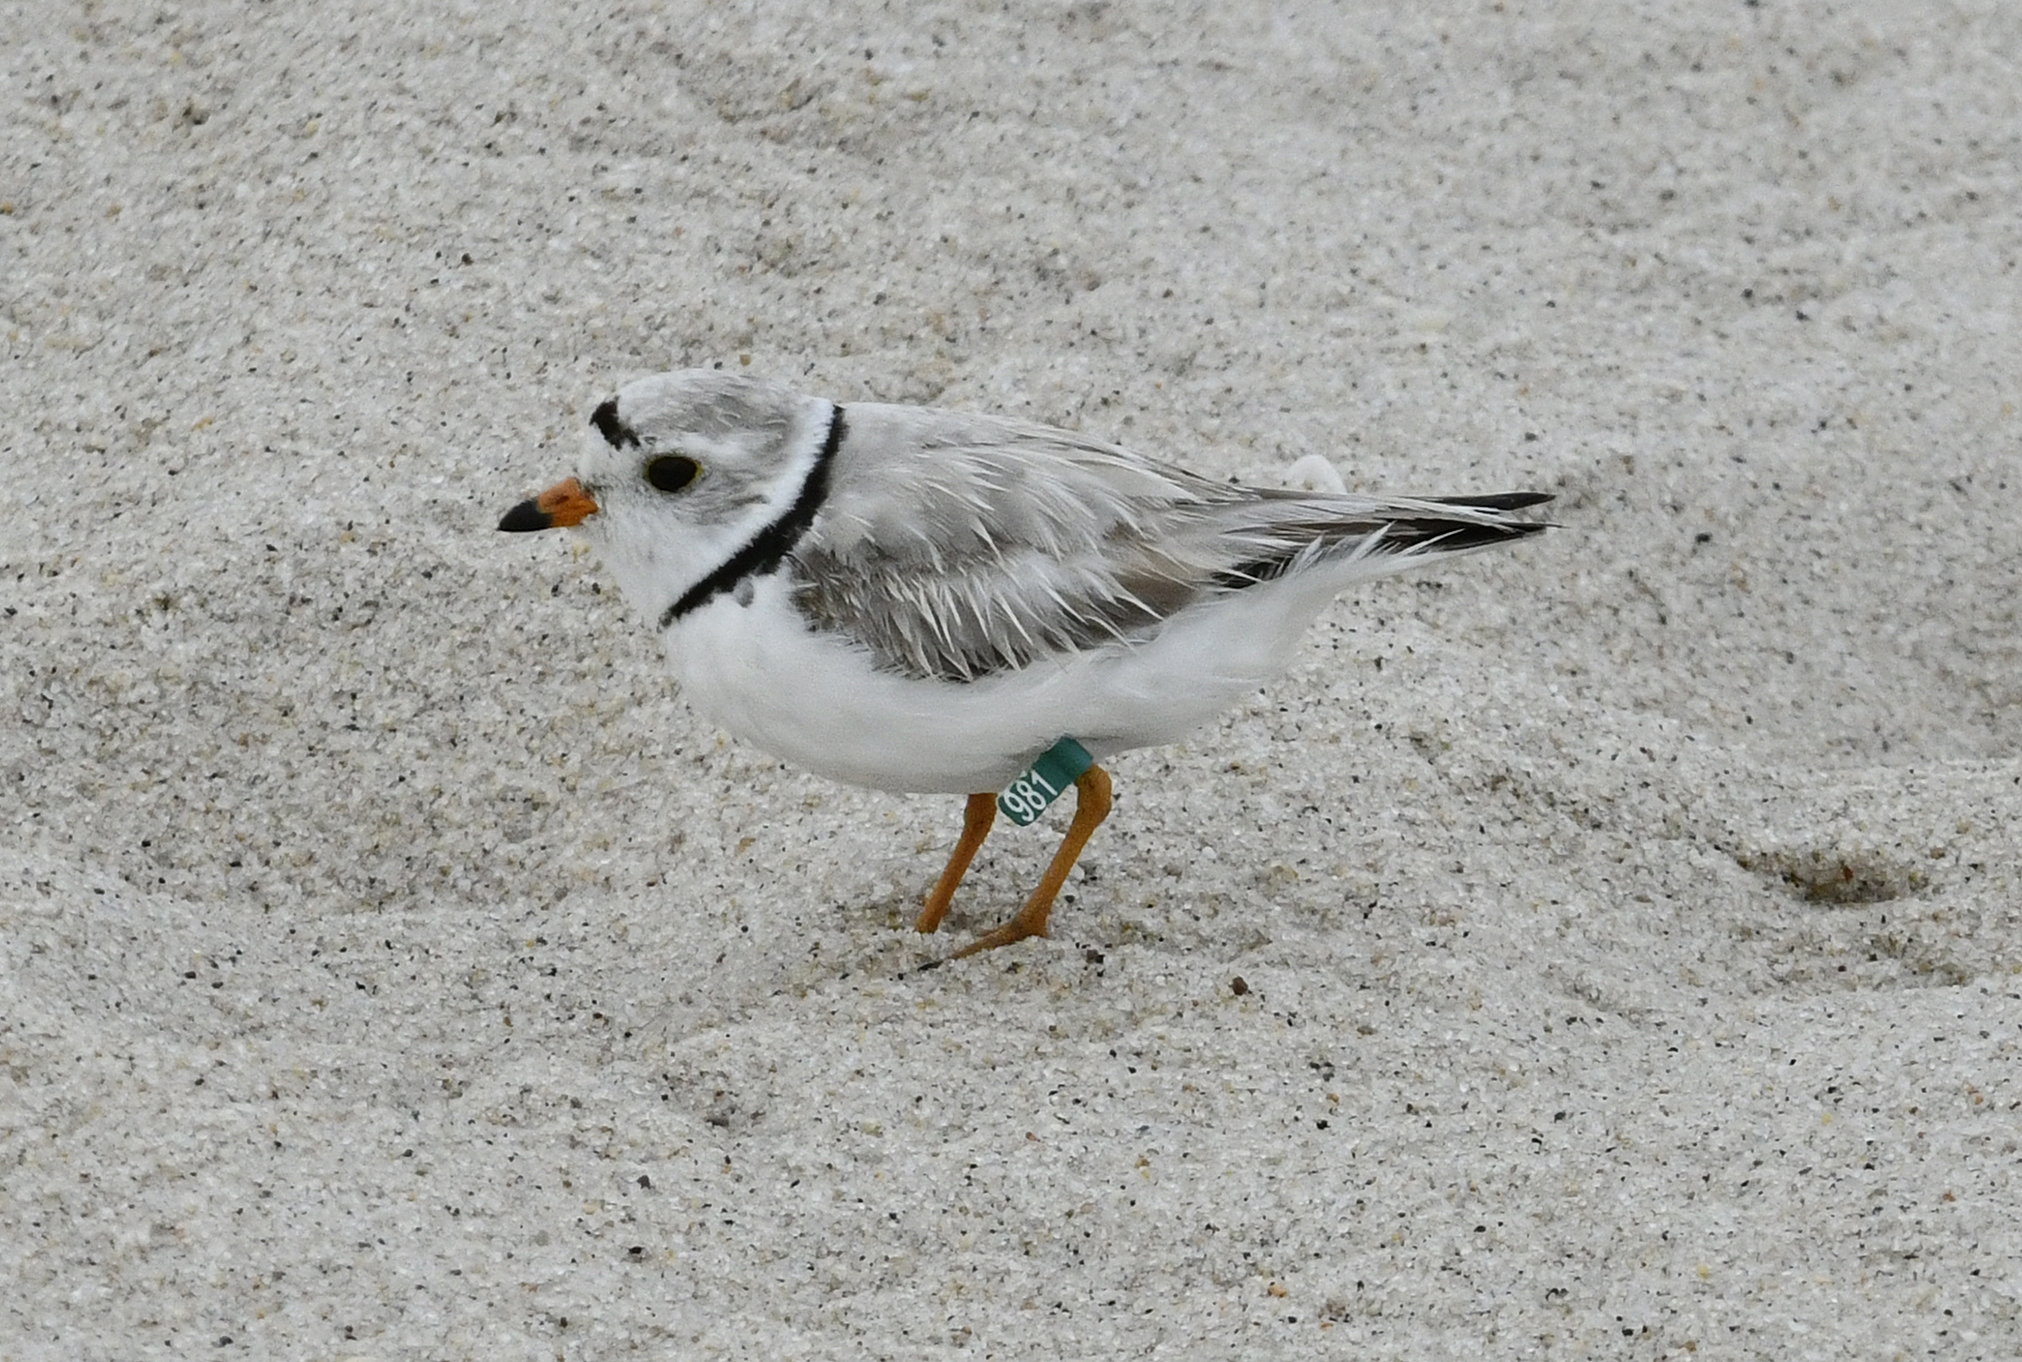 A piping plover on the beach near the